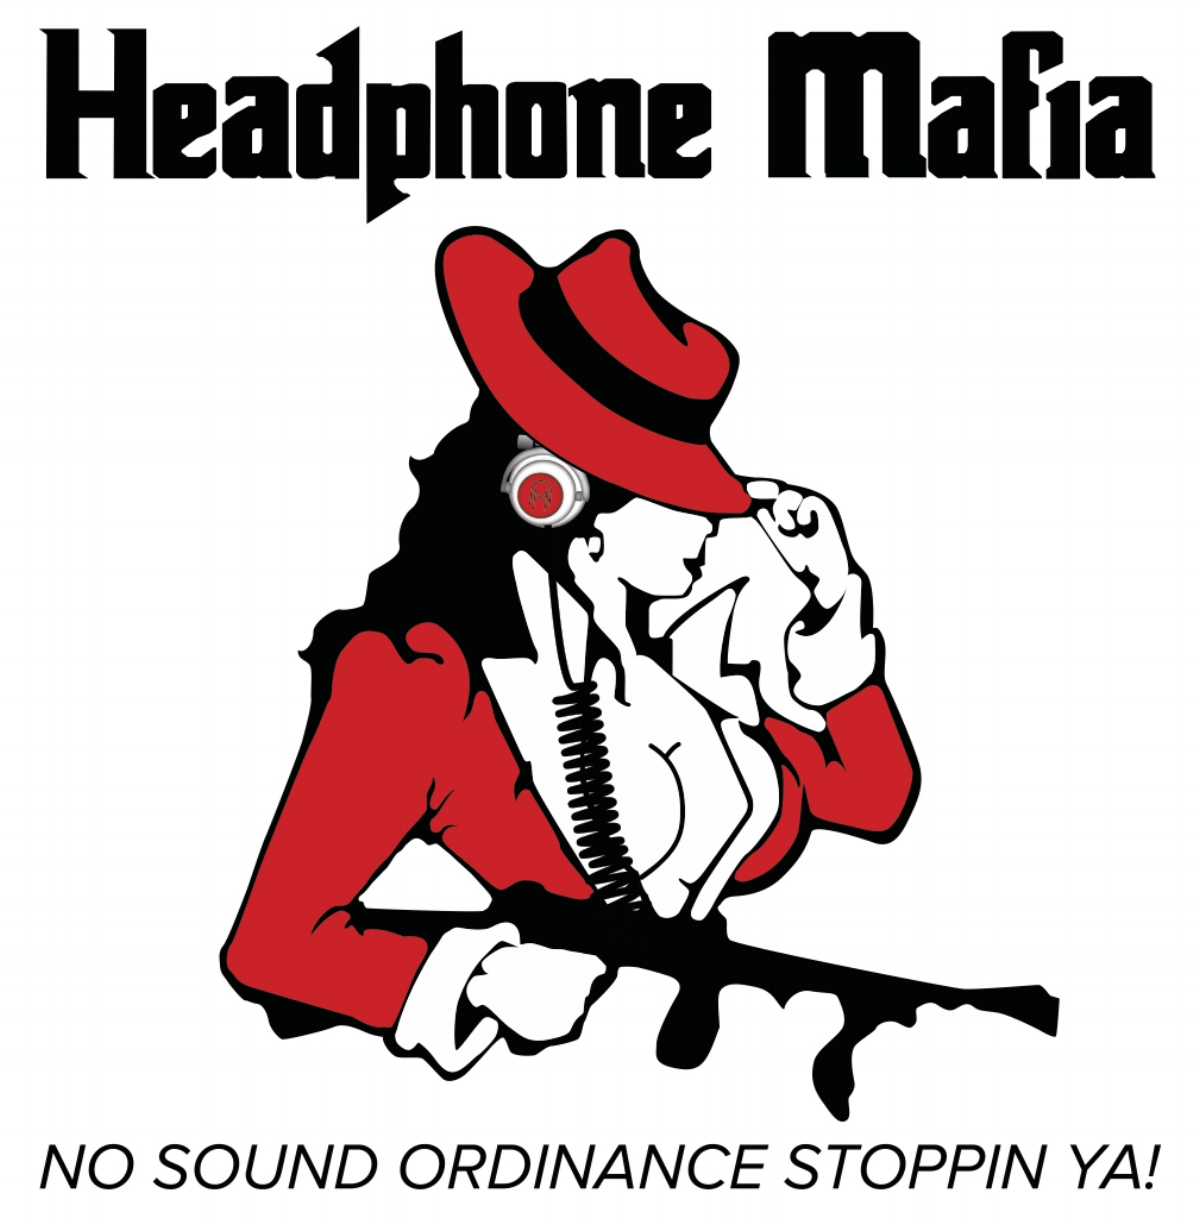 Headphone Mafia